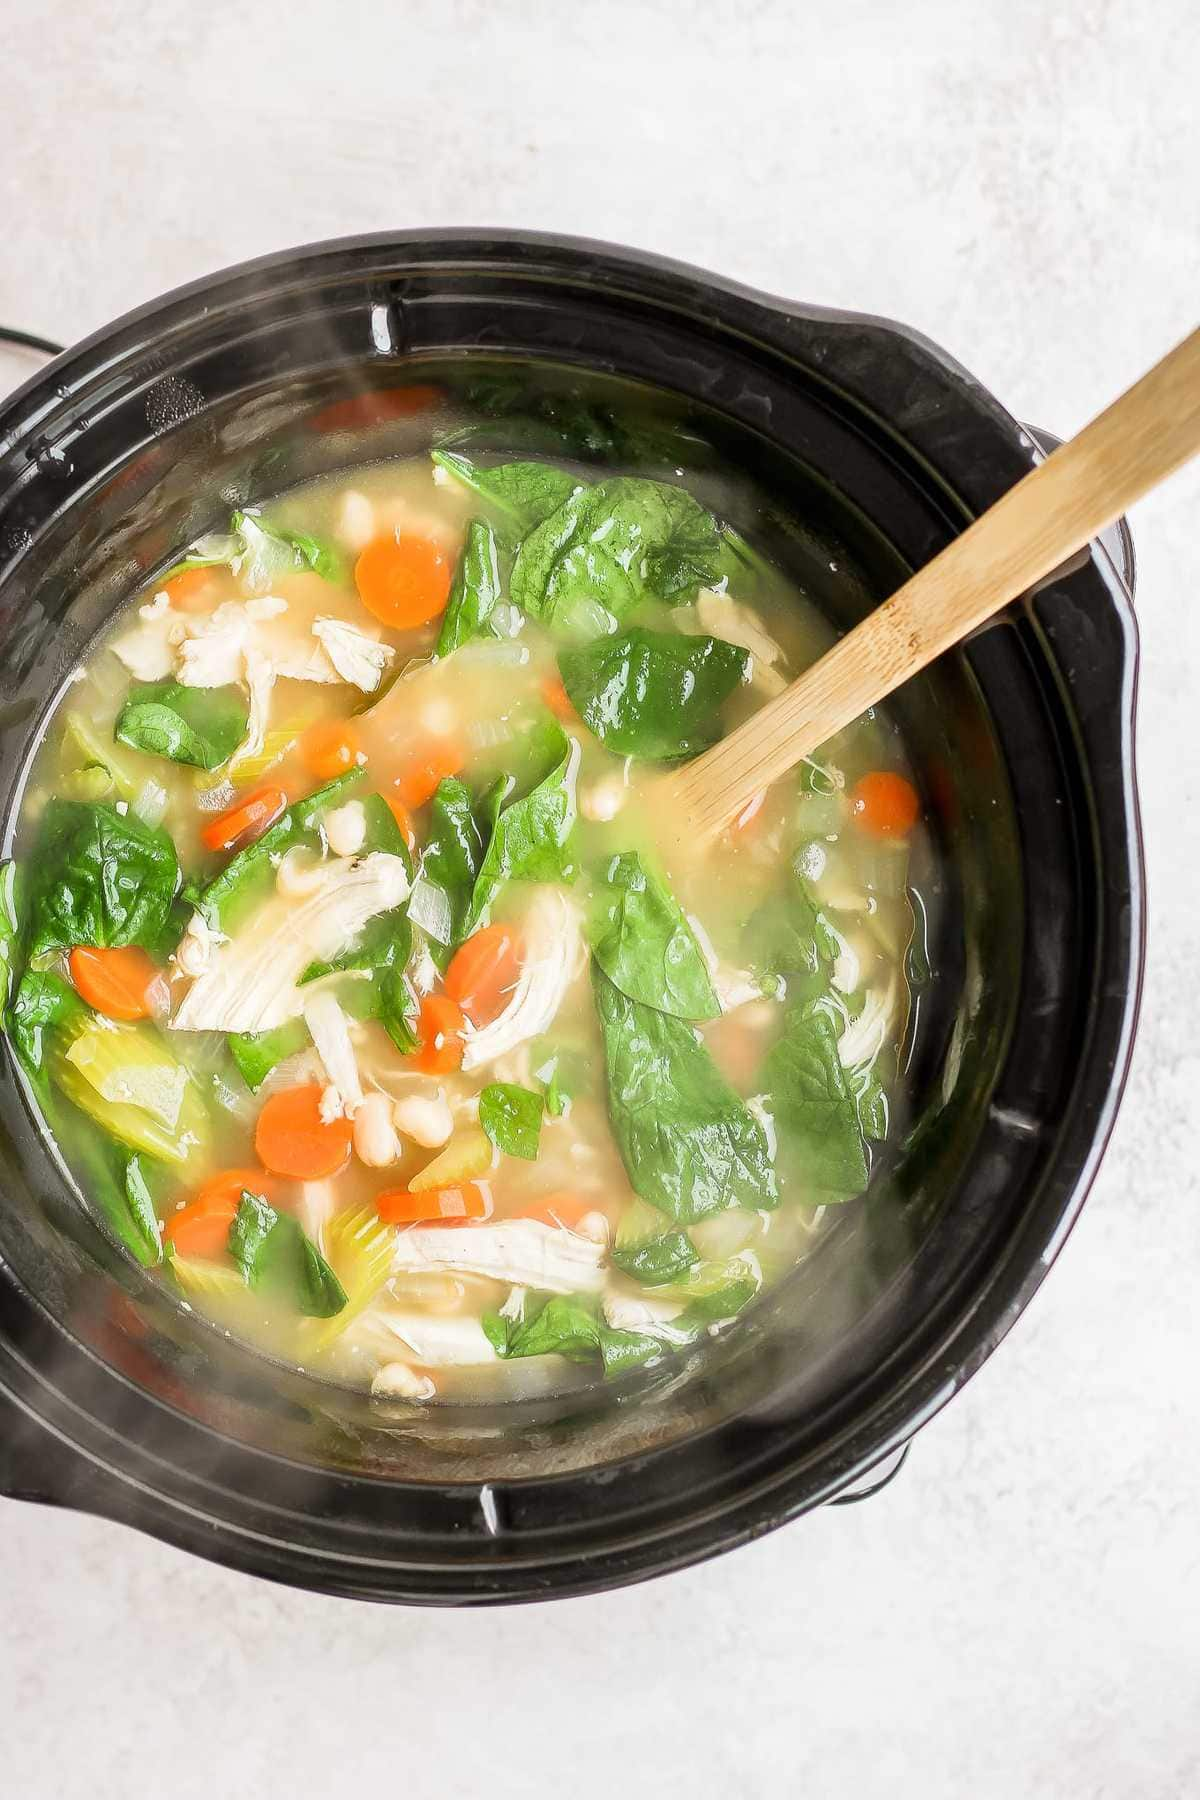 tuscan chicken soup cooking in a crockpot